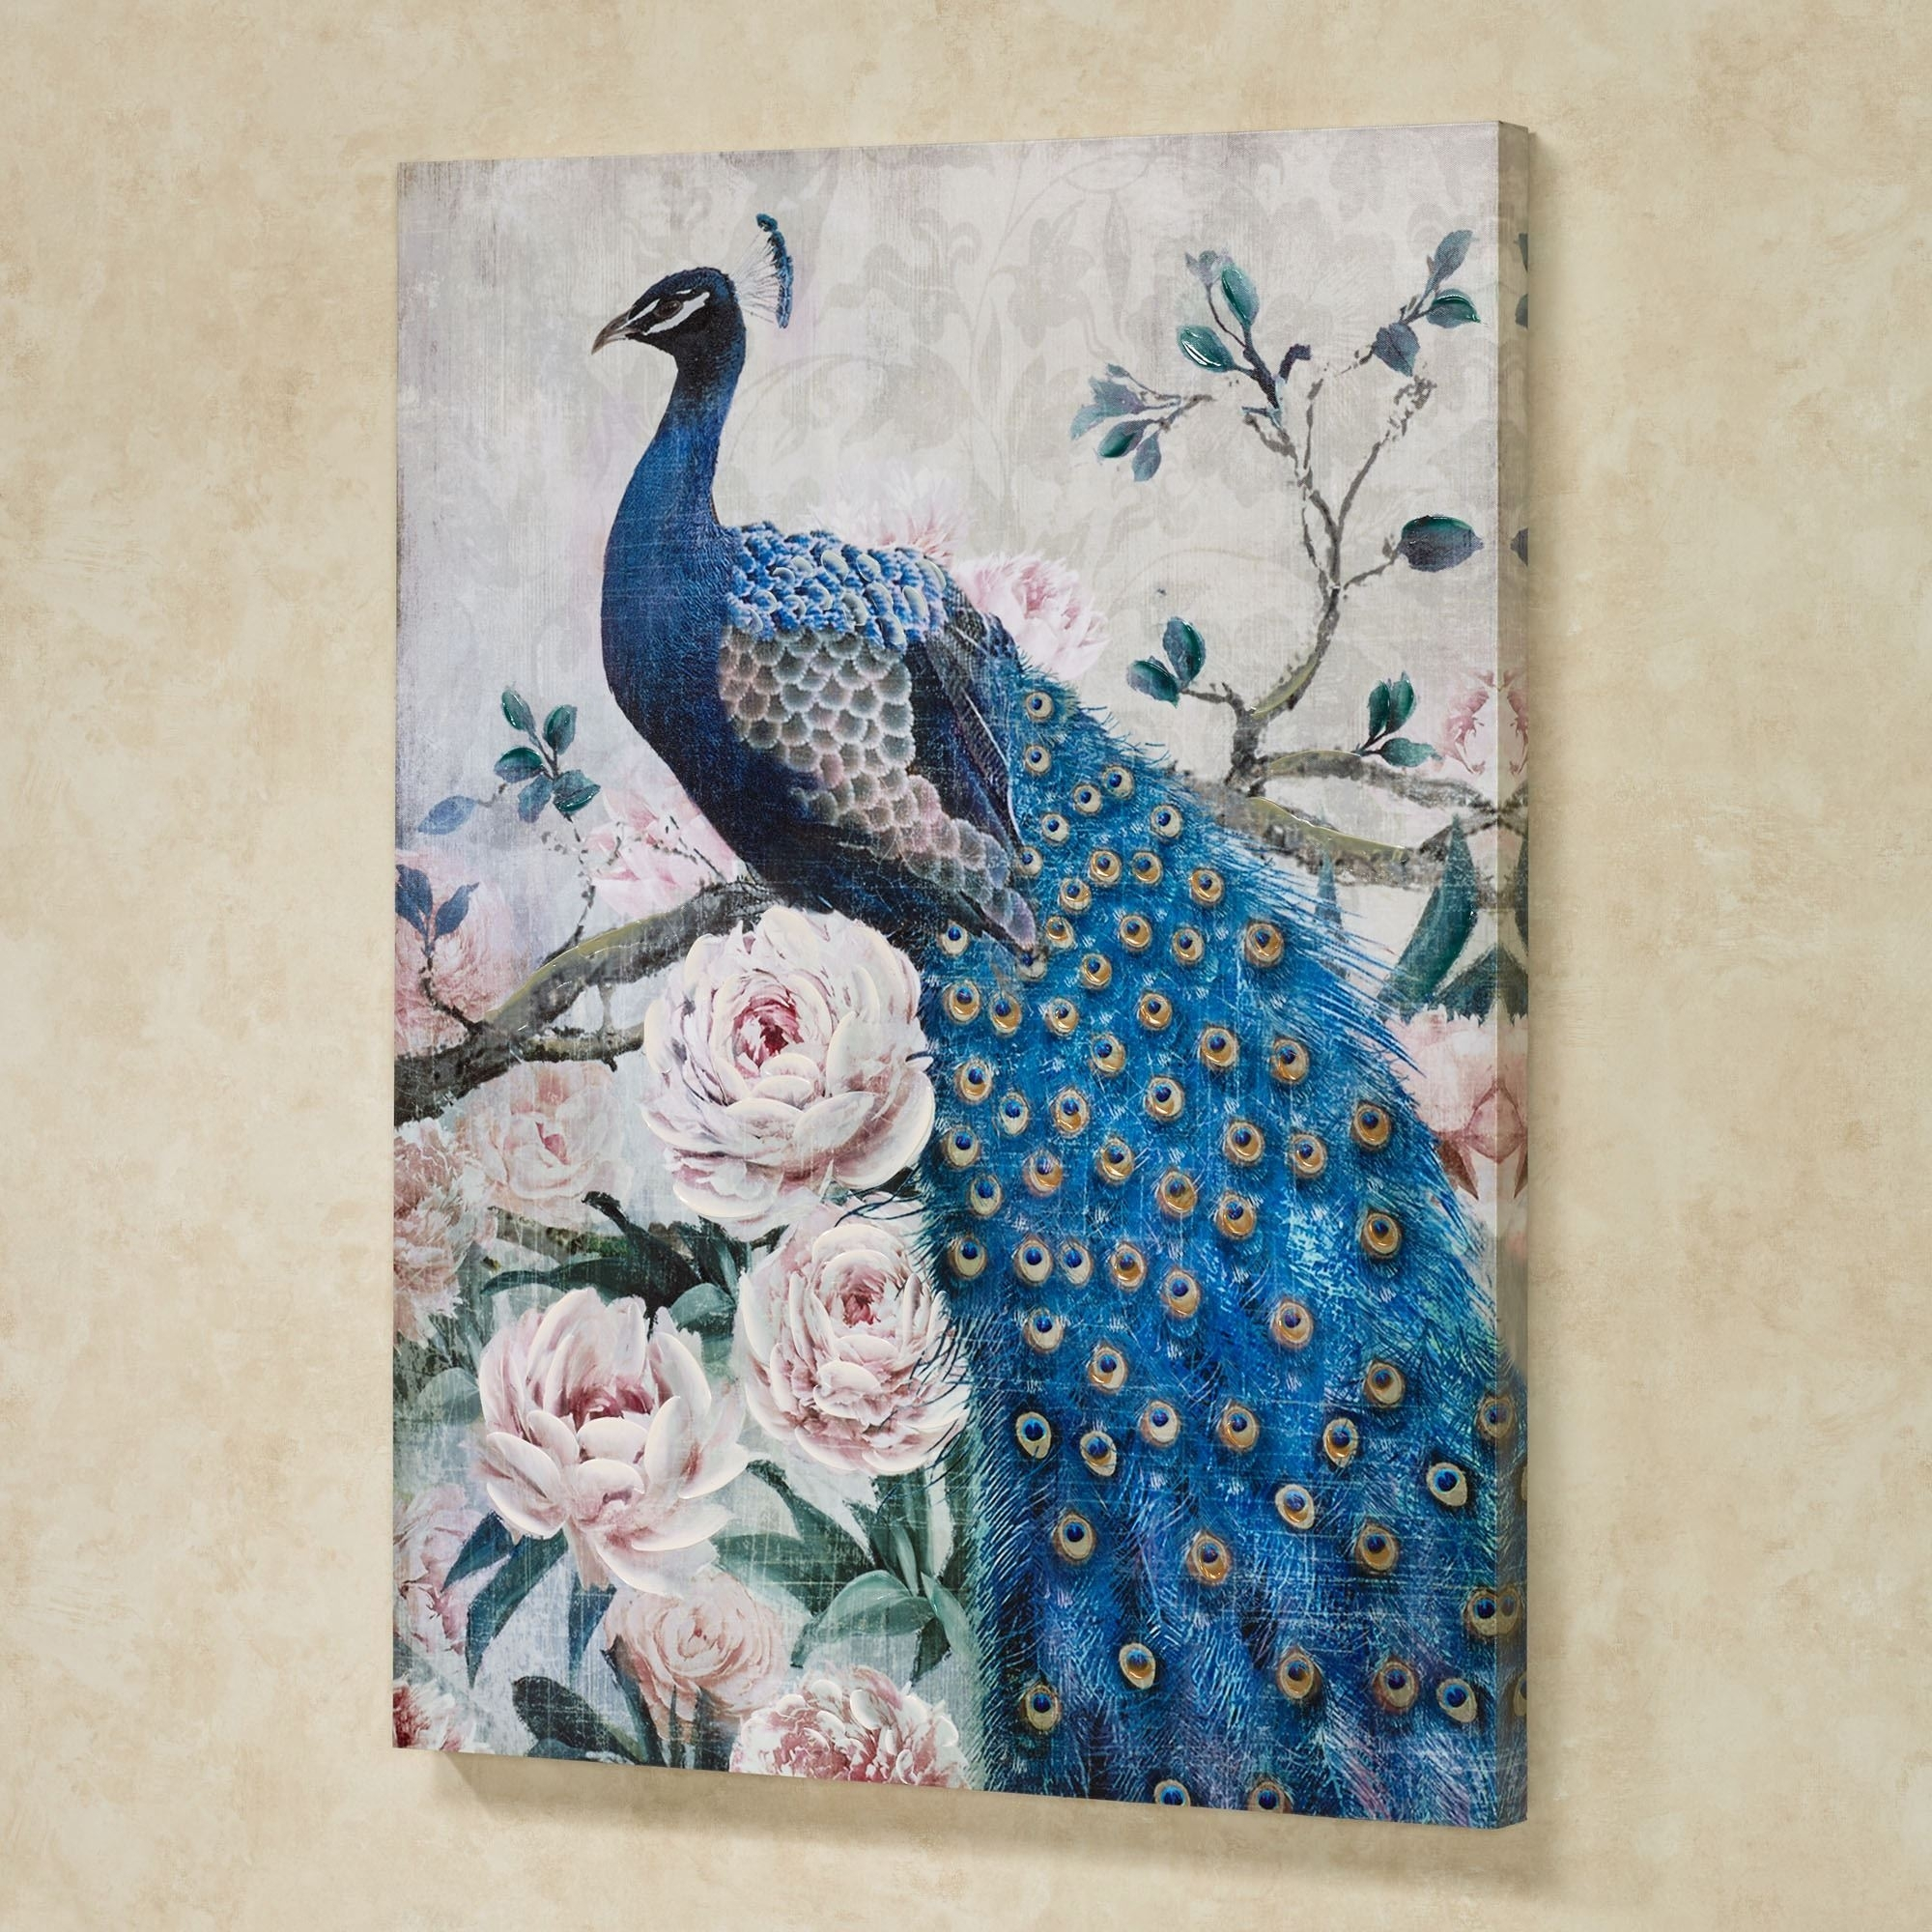 Poised Peacock Giclee Canvas Wall Art Pertaining To Peacock Wall Art (View 10 of 20)